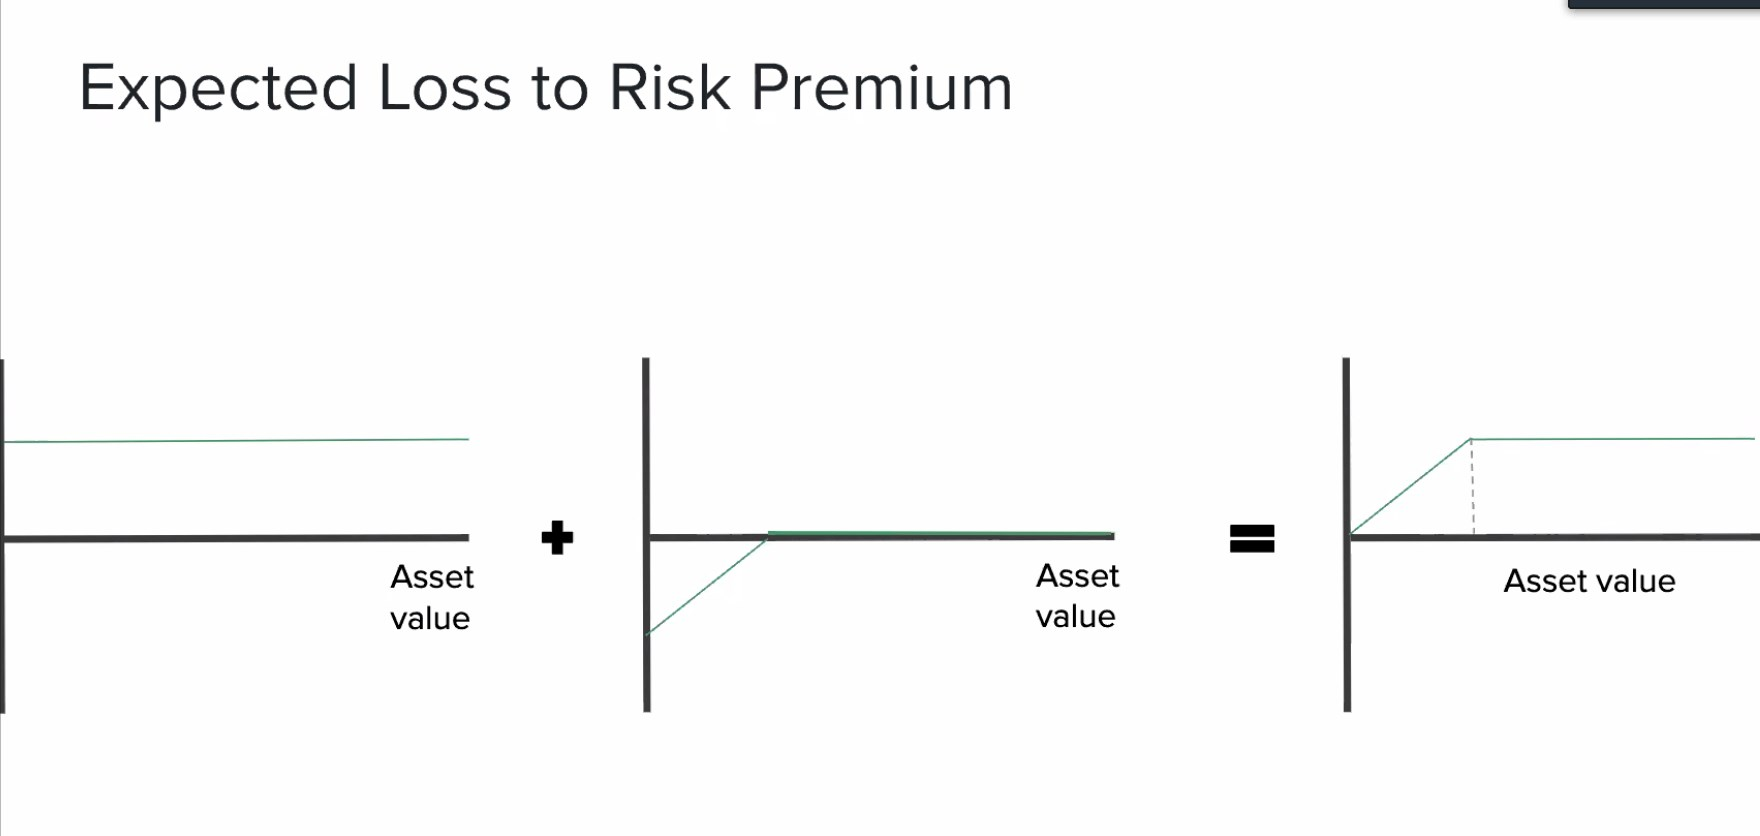 Expected Loss to Risk Premium